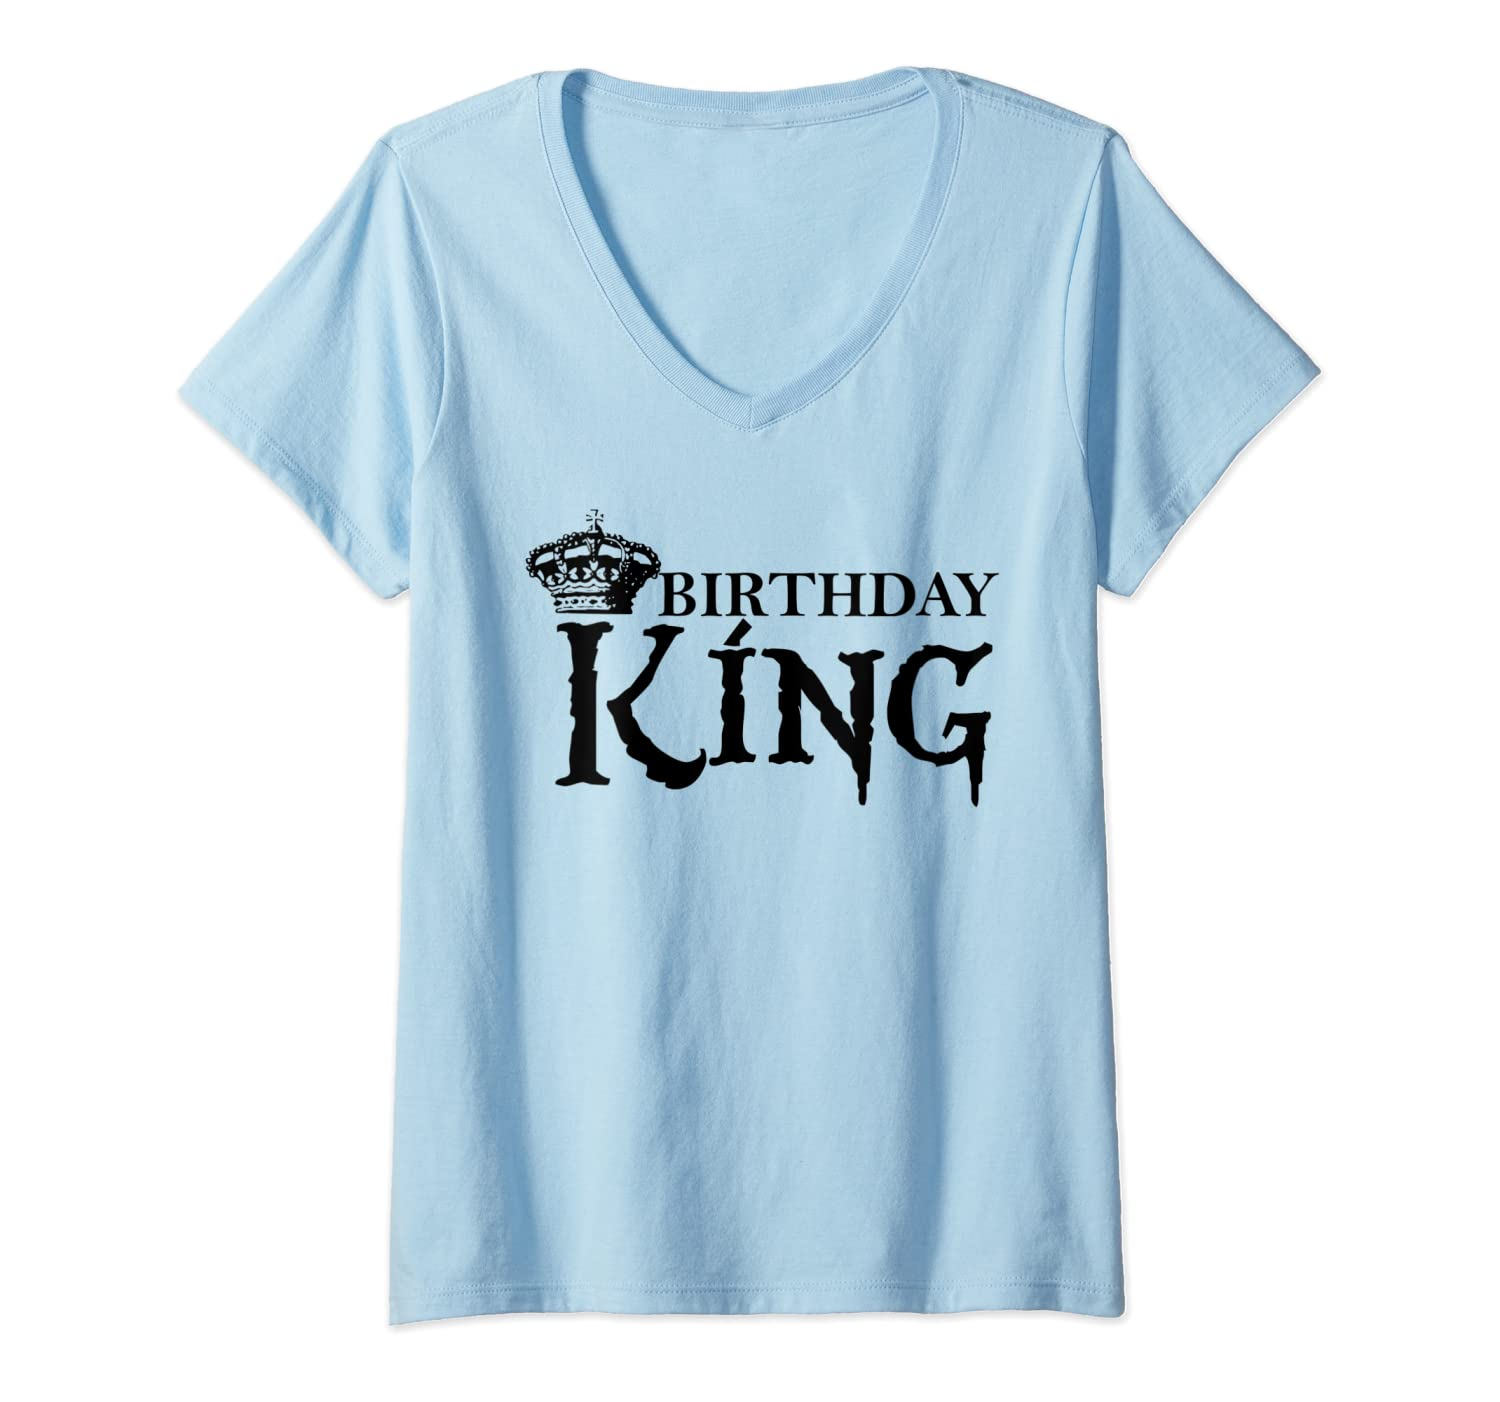 Birthday King Cute Present Party Theme Out Idea For Shirts